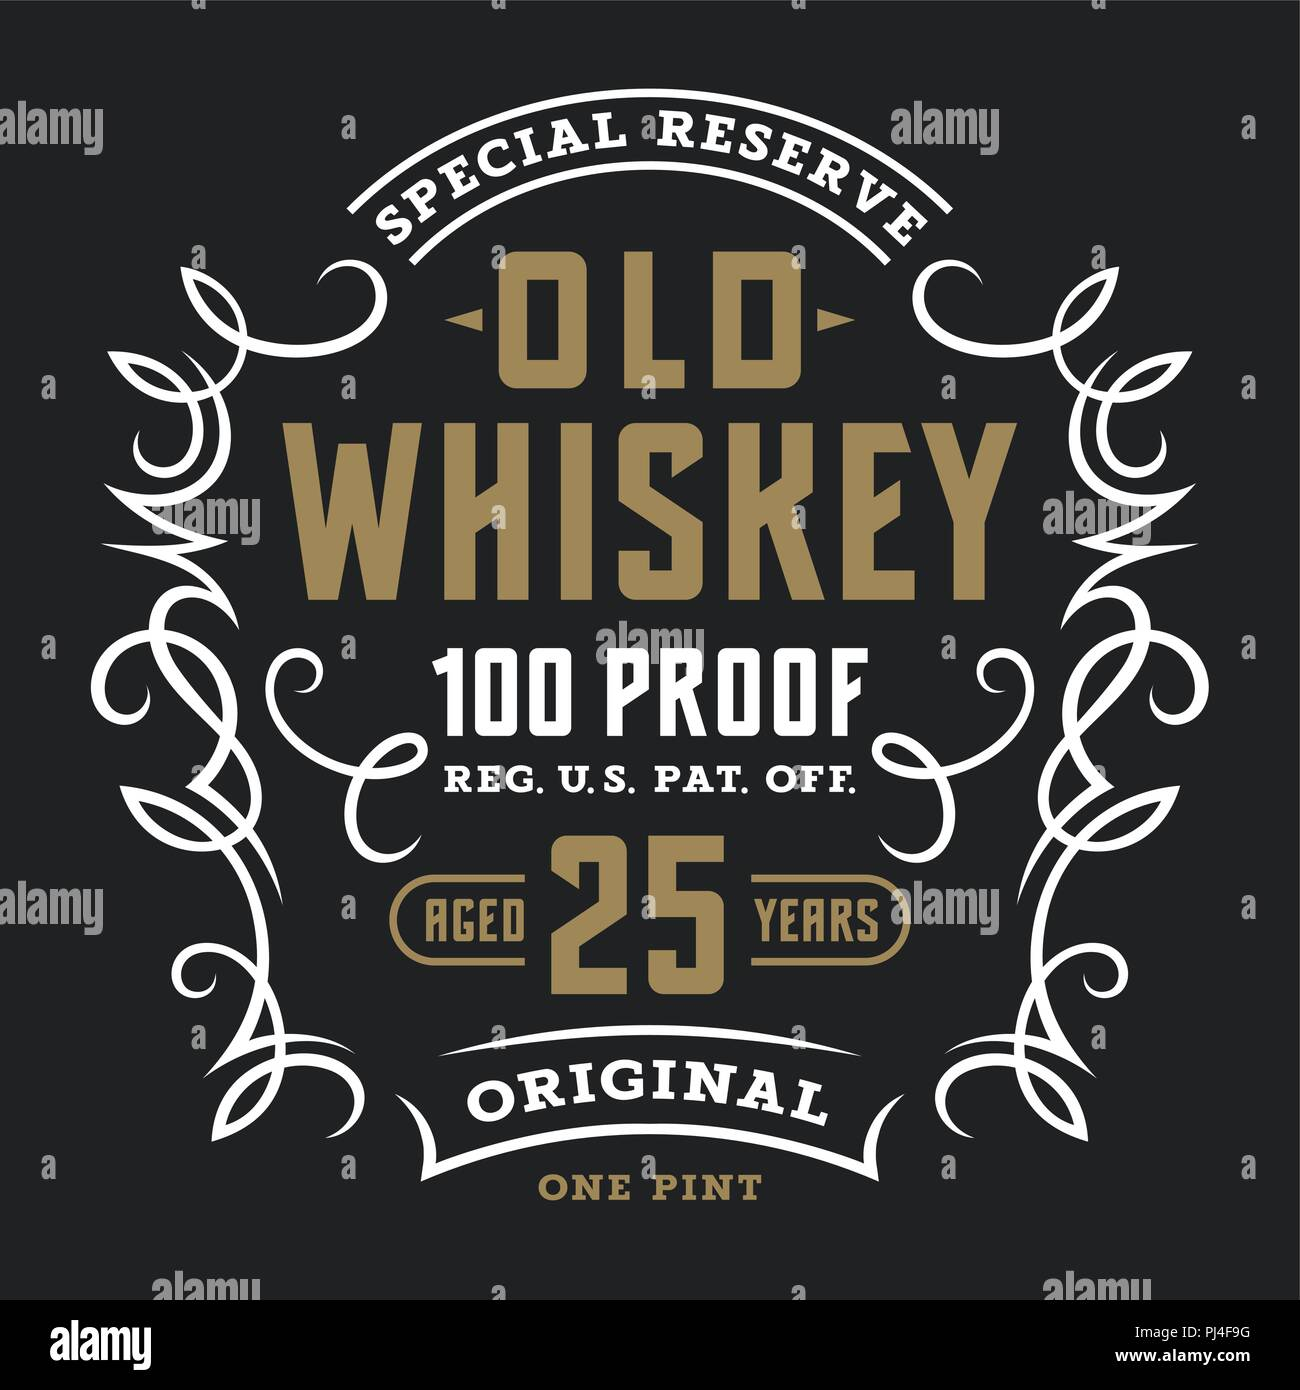 vintage whiskey label template calligraphic design elements t